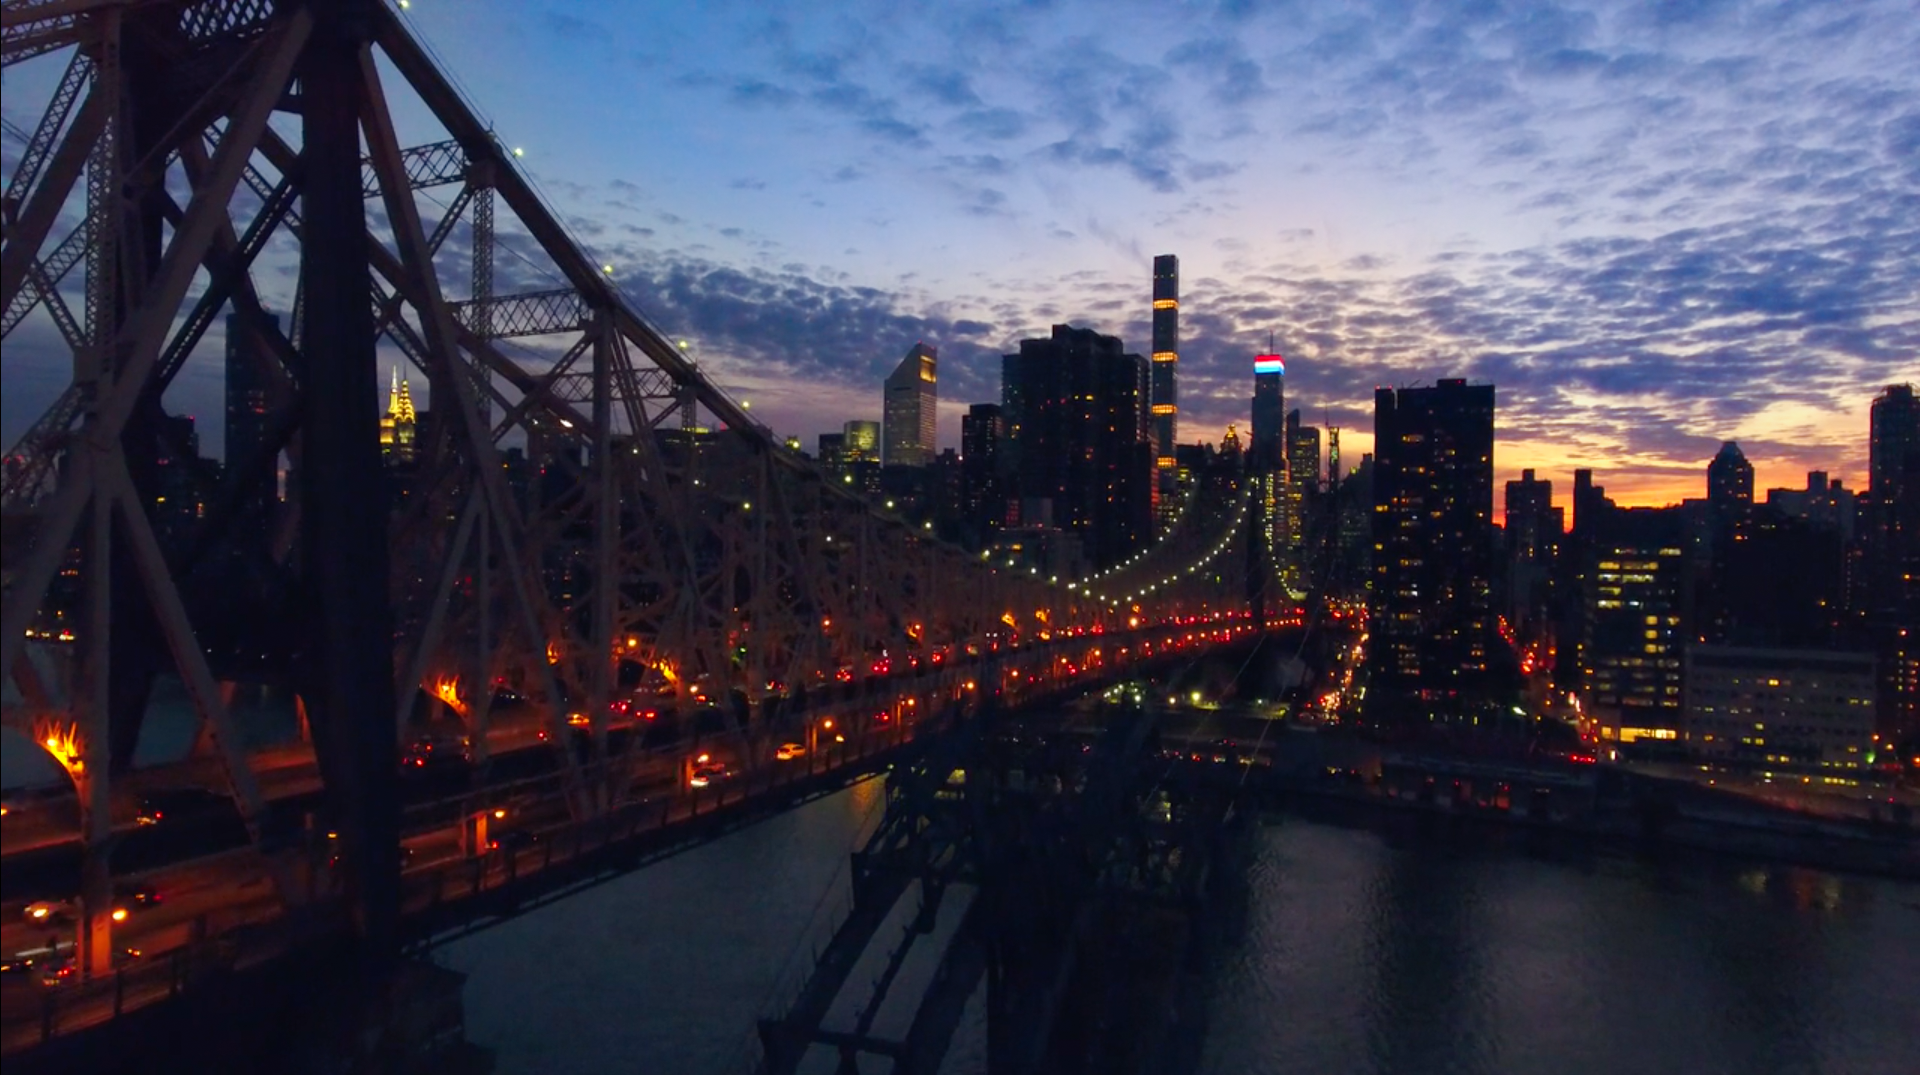 The Queensboro Bridge (59th Street) NYC